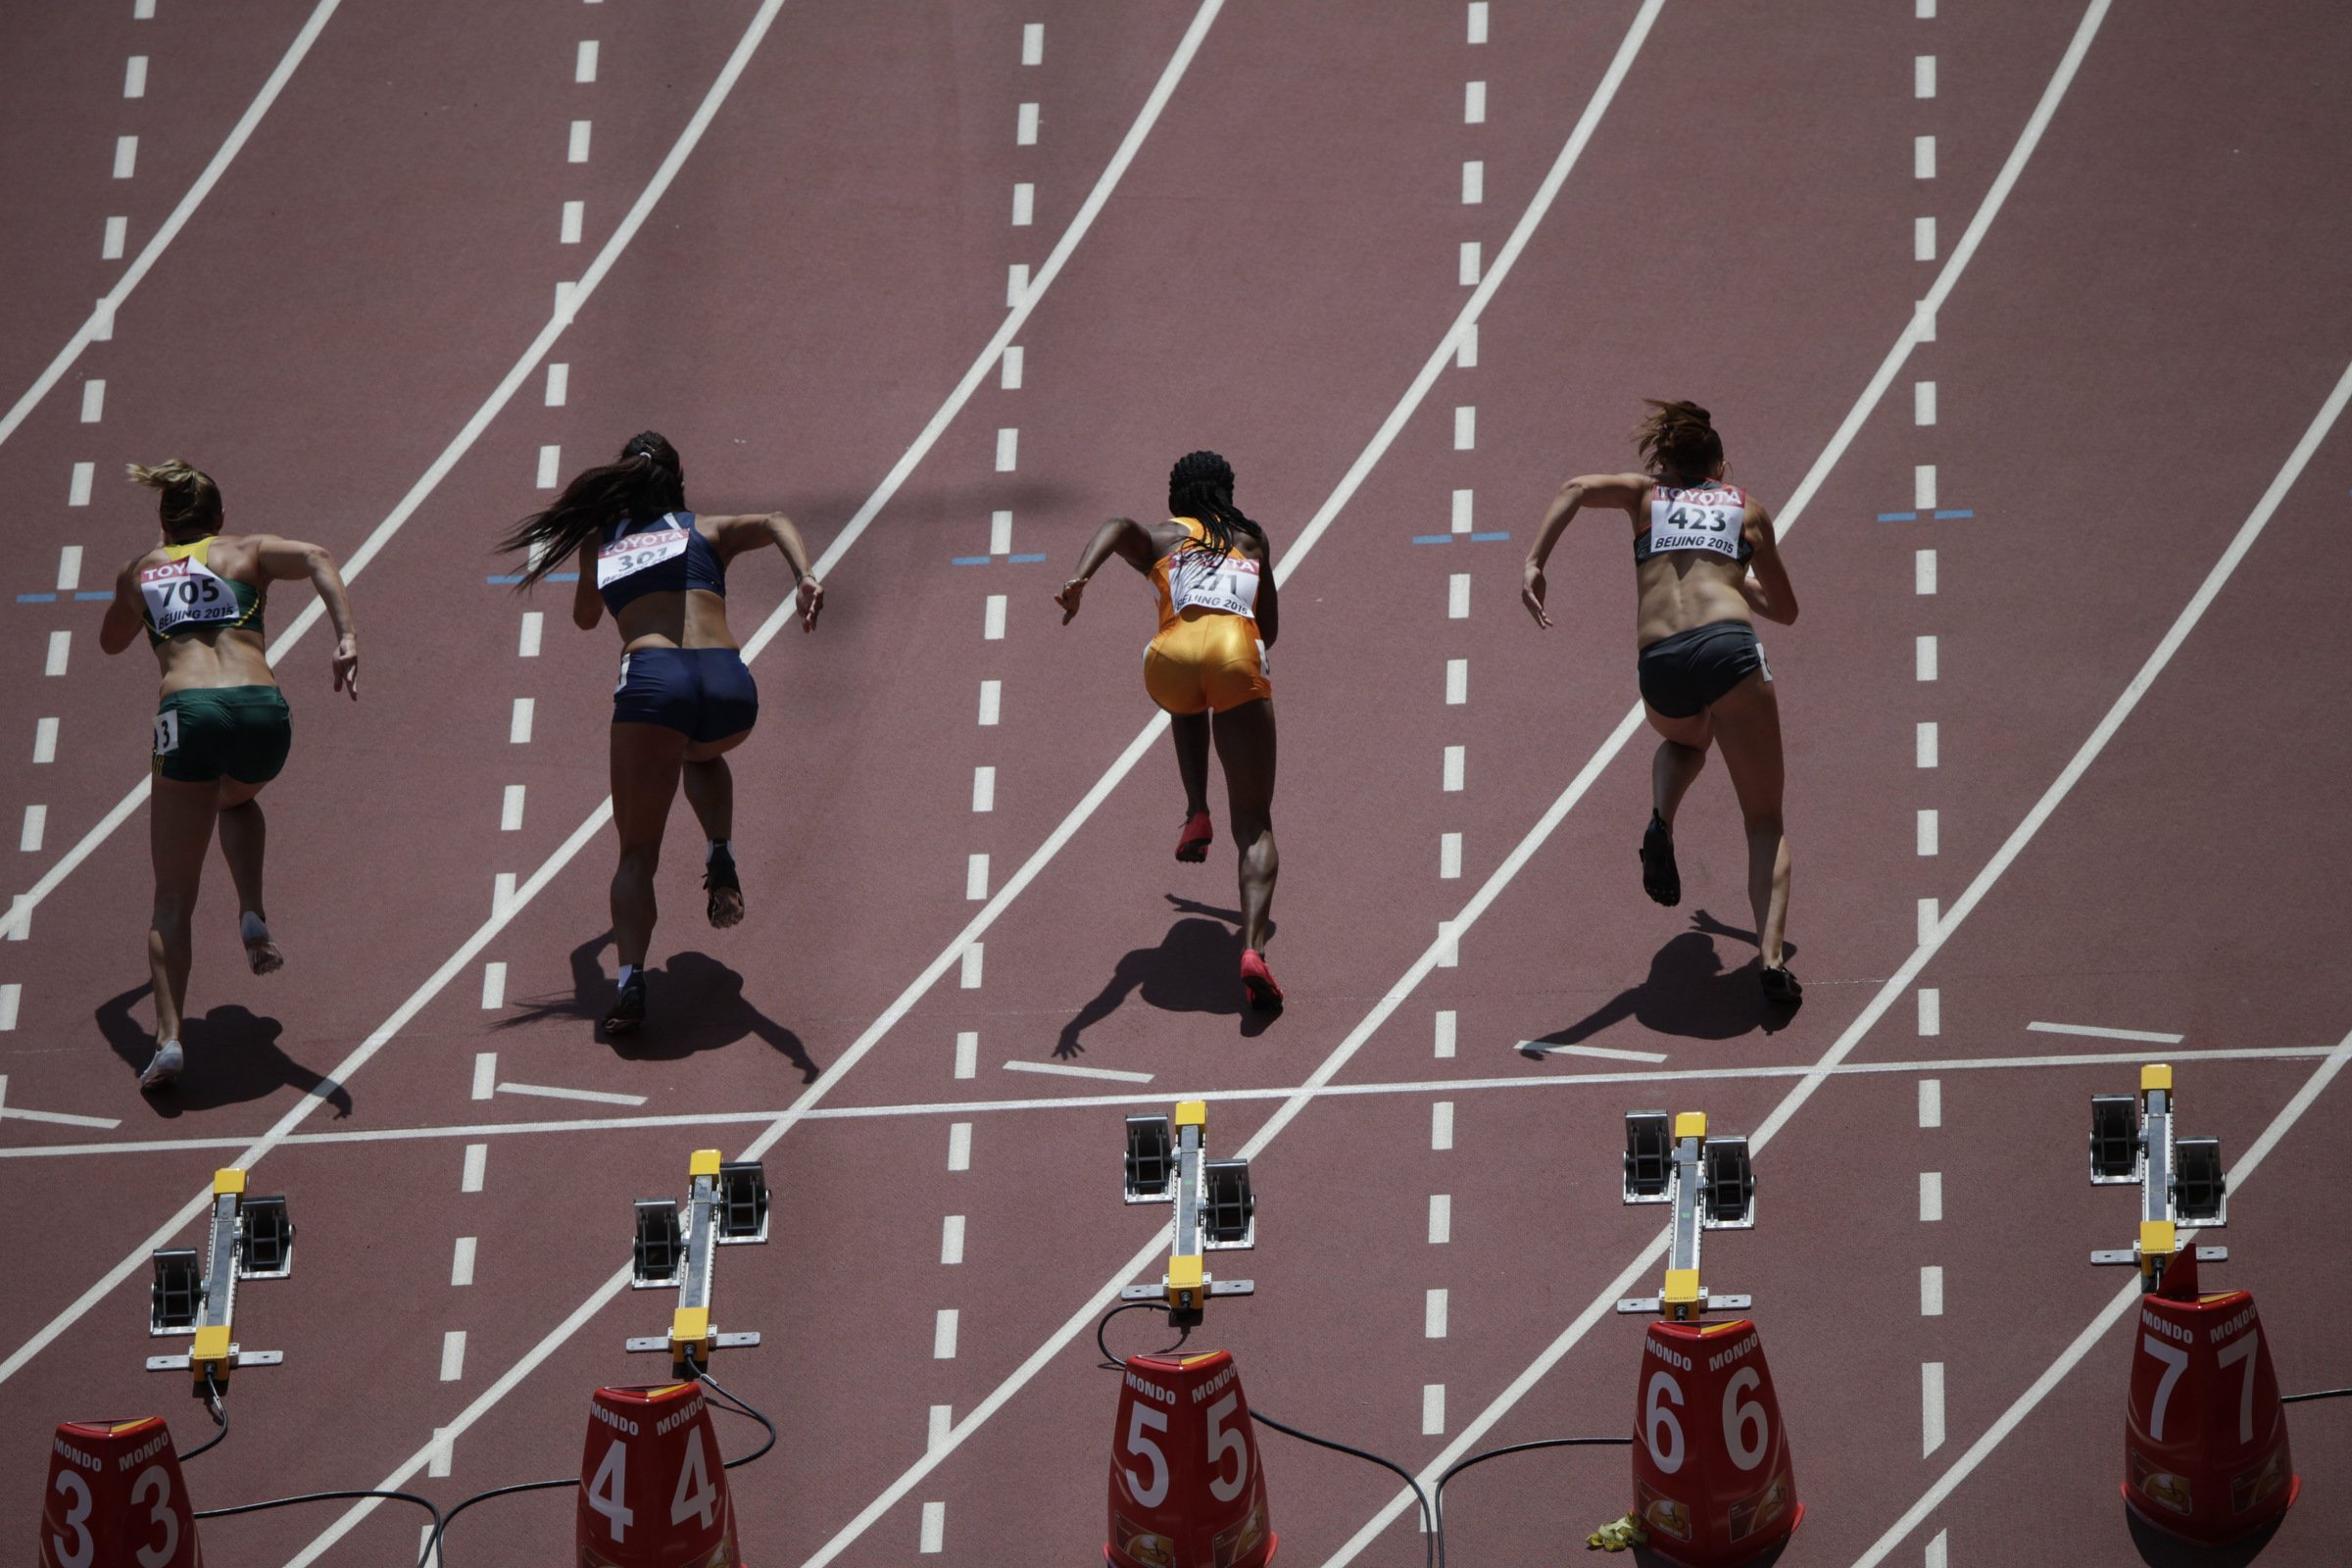 Athletes in the first section of the women's 100-meter dash start.